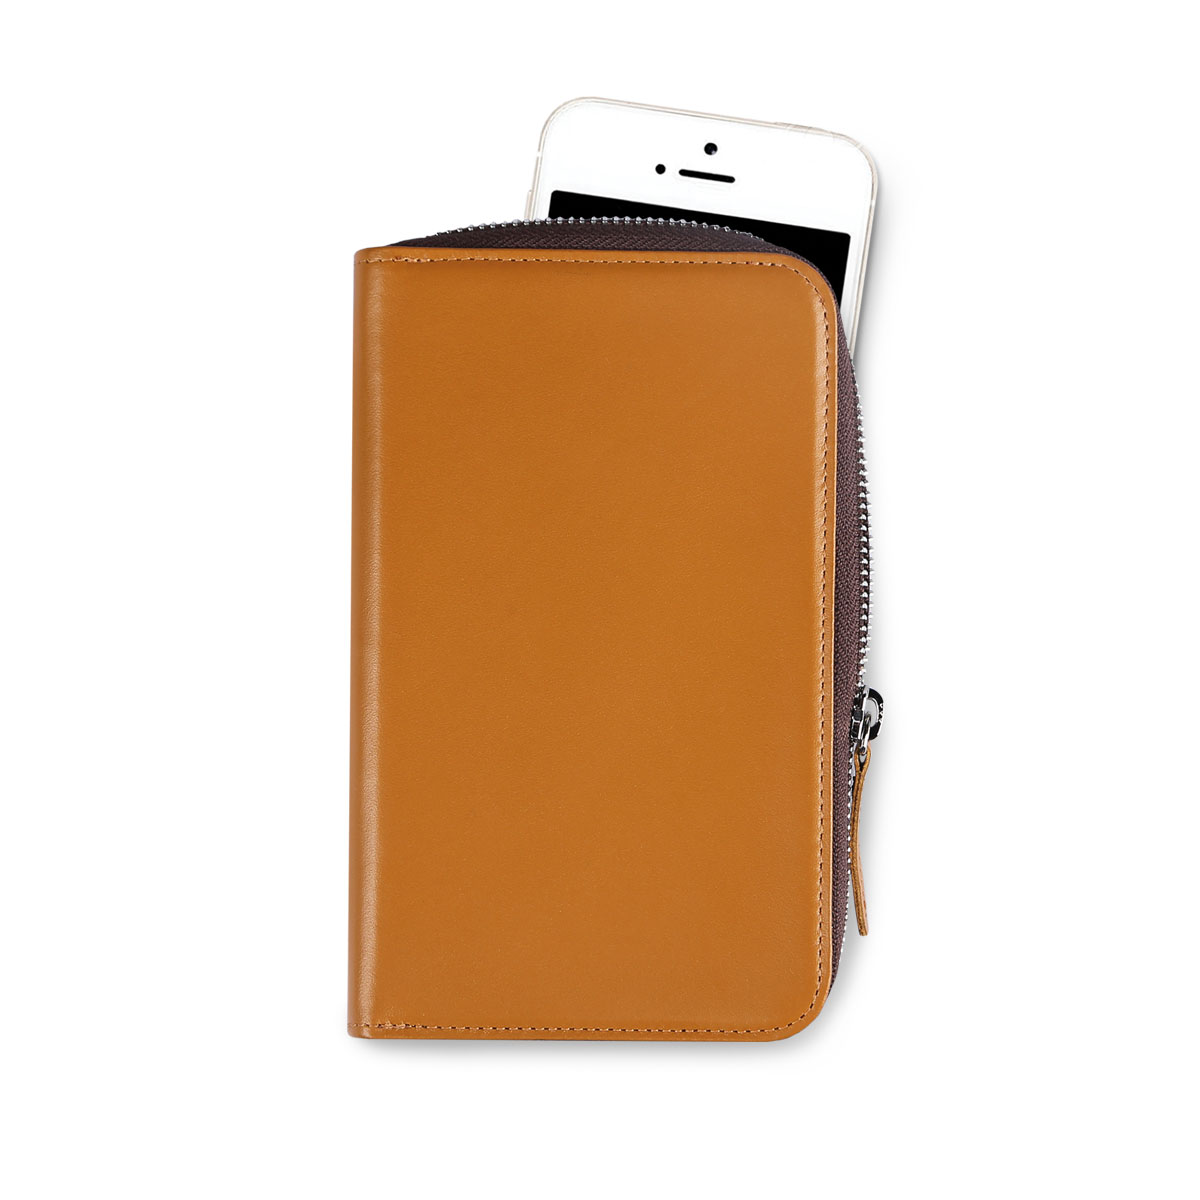 Daily Phone Pocket Plus Camel